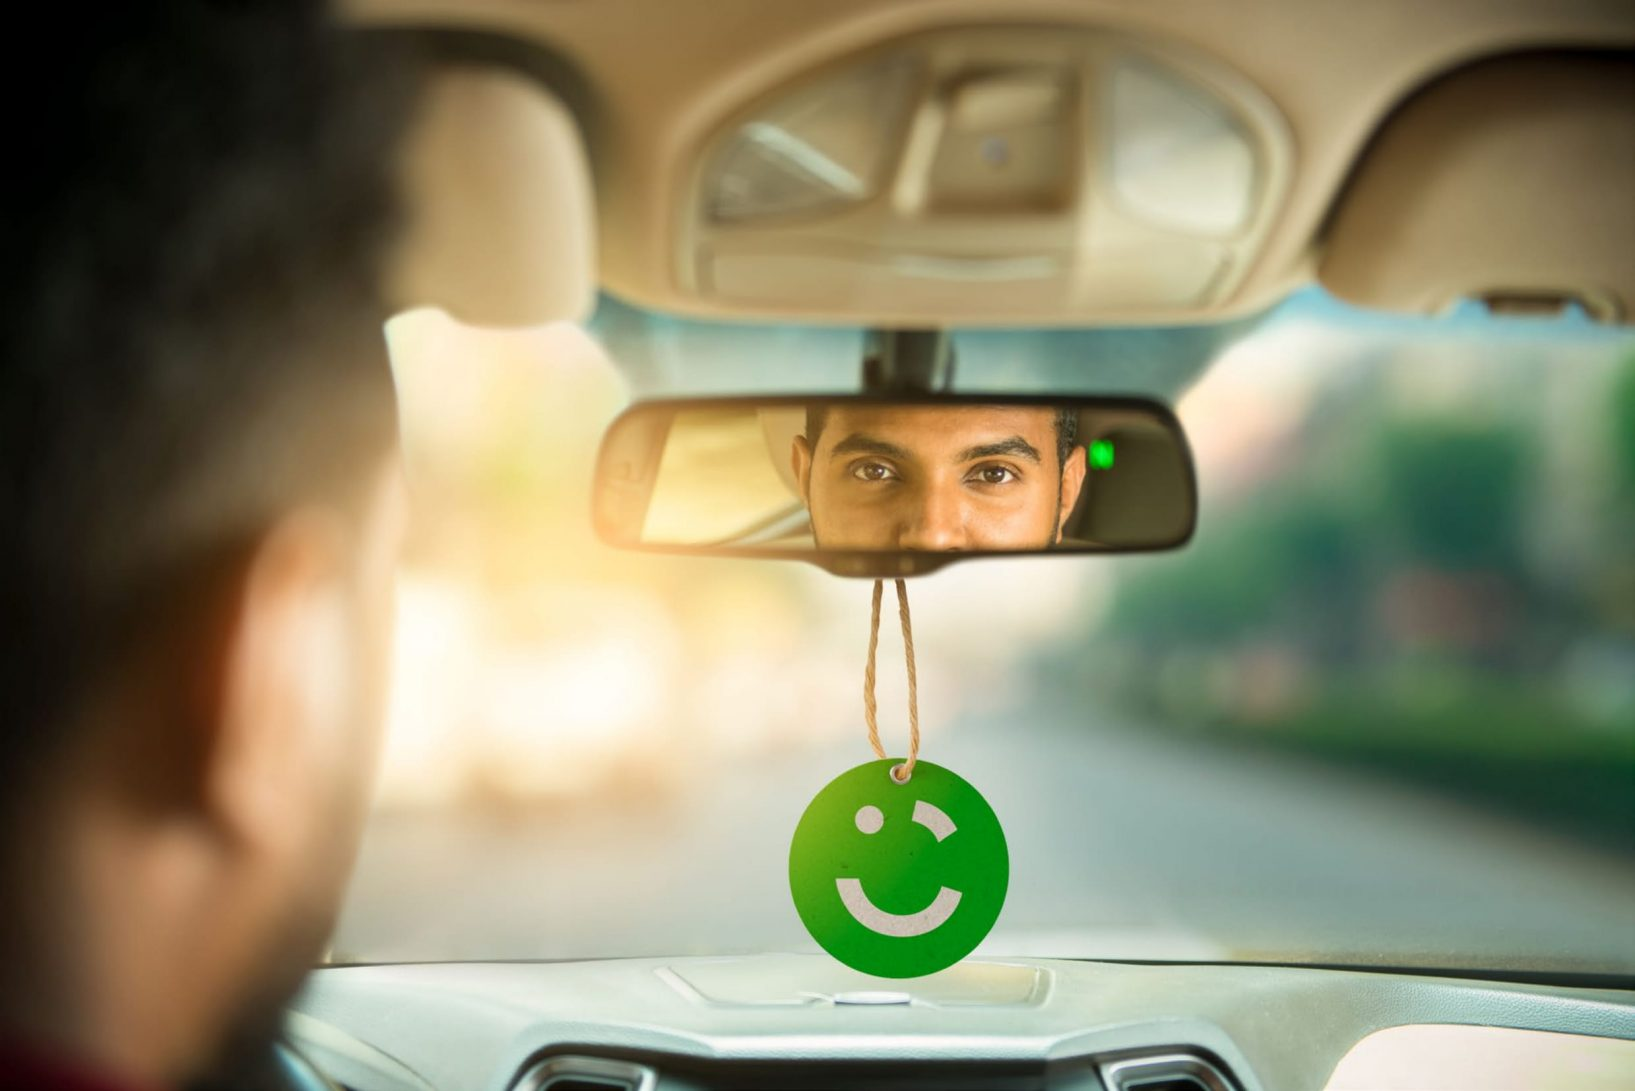 Dubai-Based Ride Hailing Giant Careem Launches Operations In Sudan